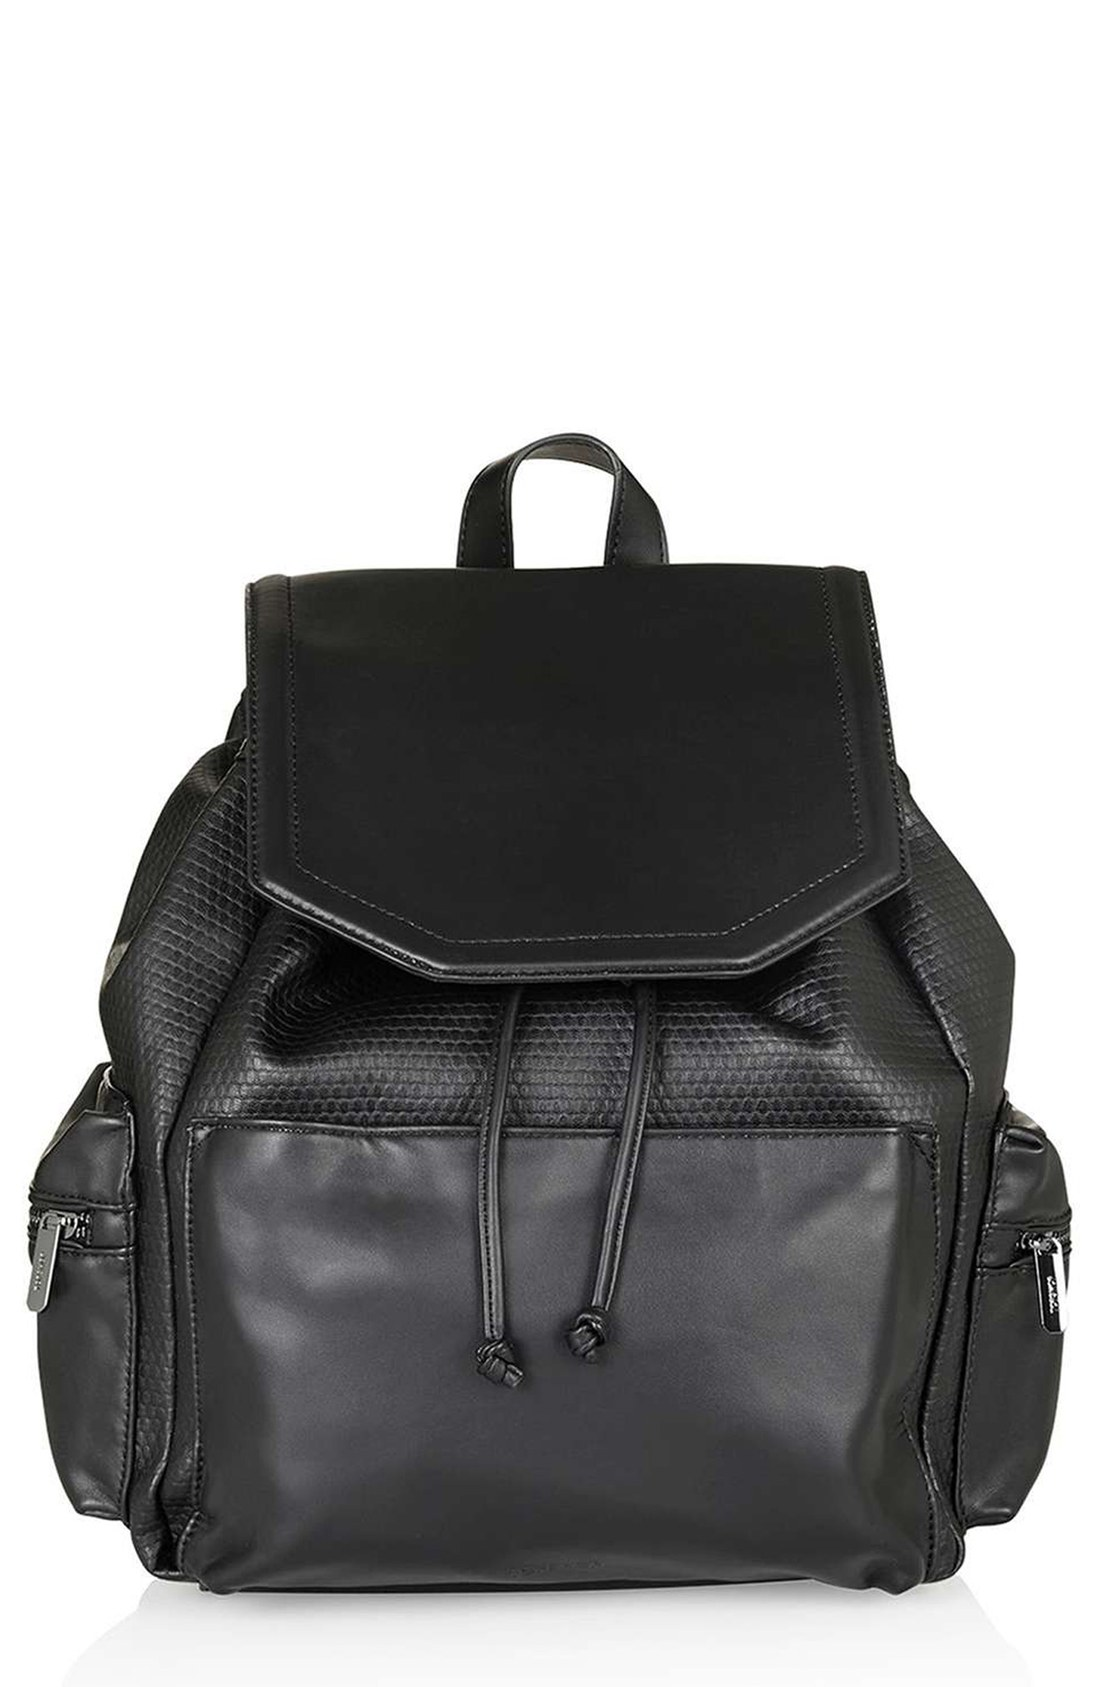 Designer Leather Backpacks ehFI176m